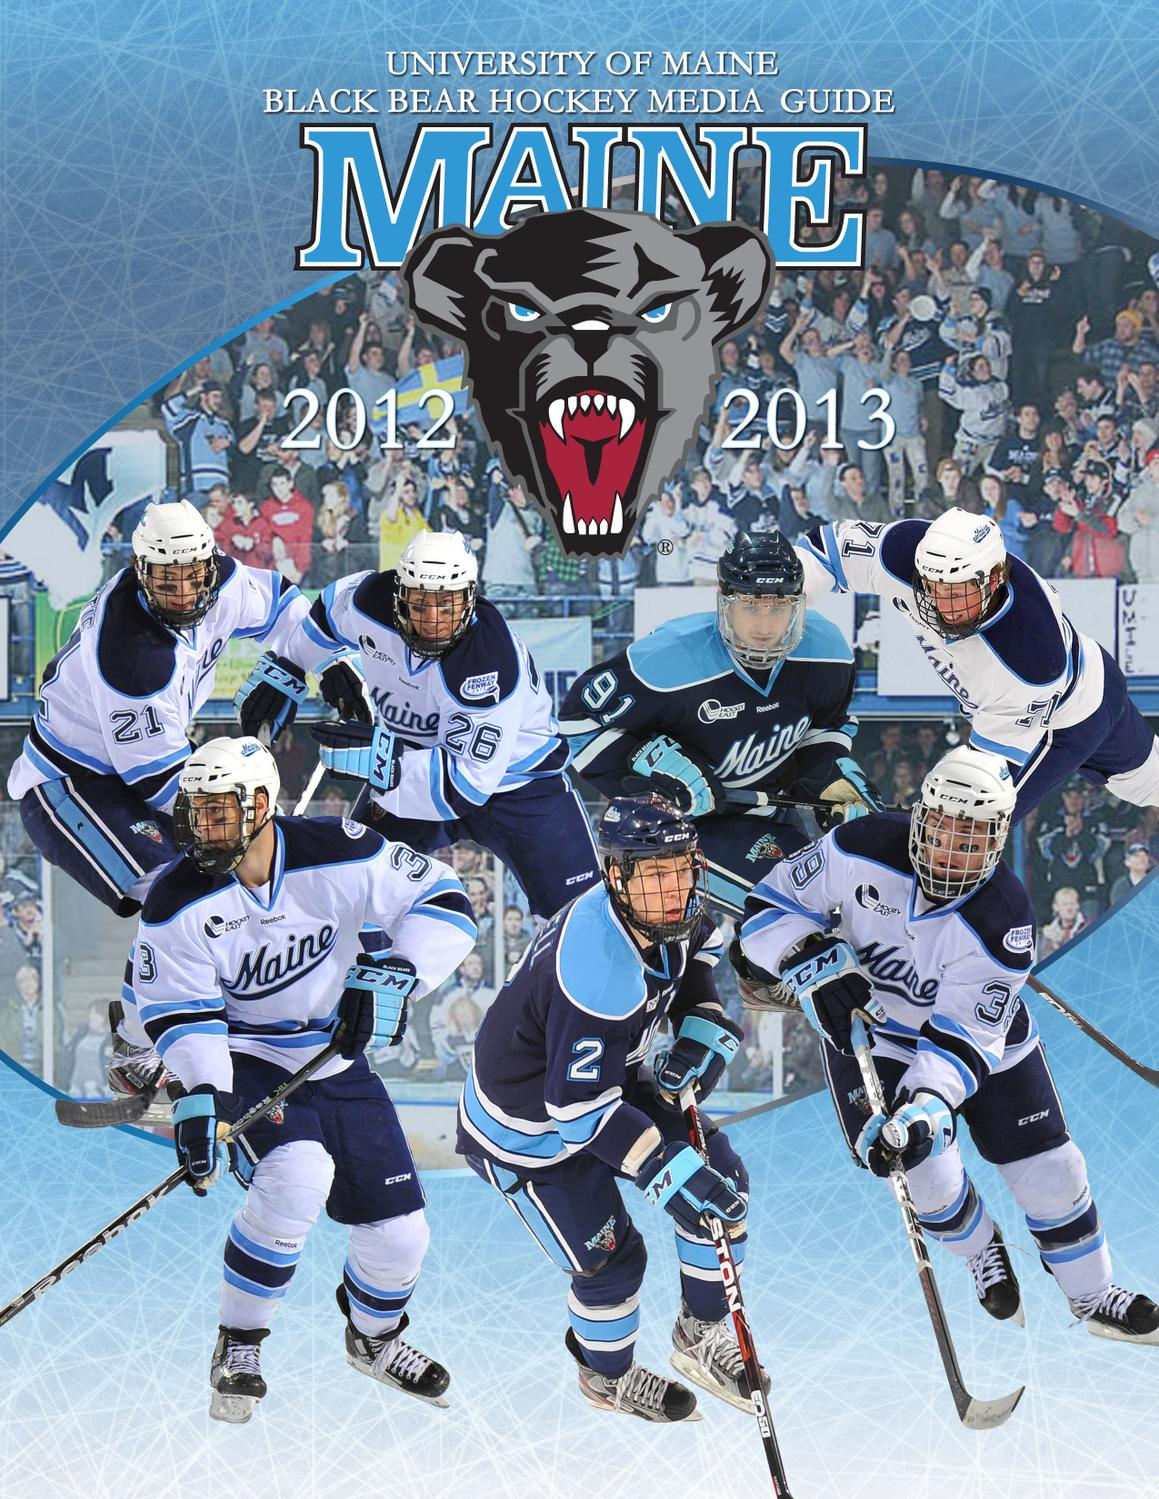 2012-2013 Maine Men s Ice Hockey Guide by University of Maine Athletics  Department - issuu fe4a0b5c6